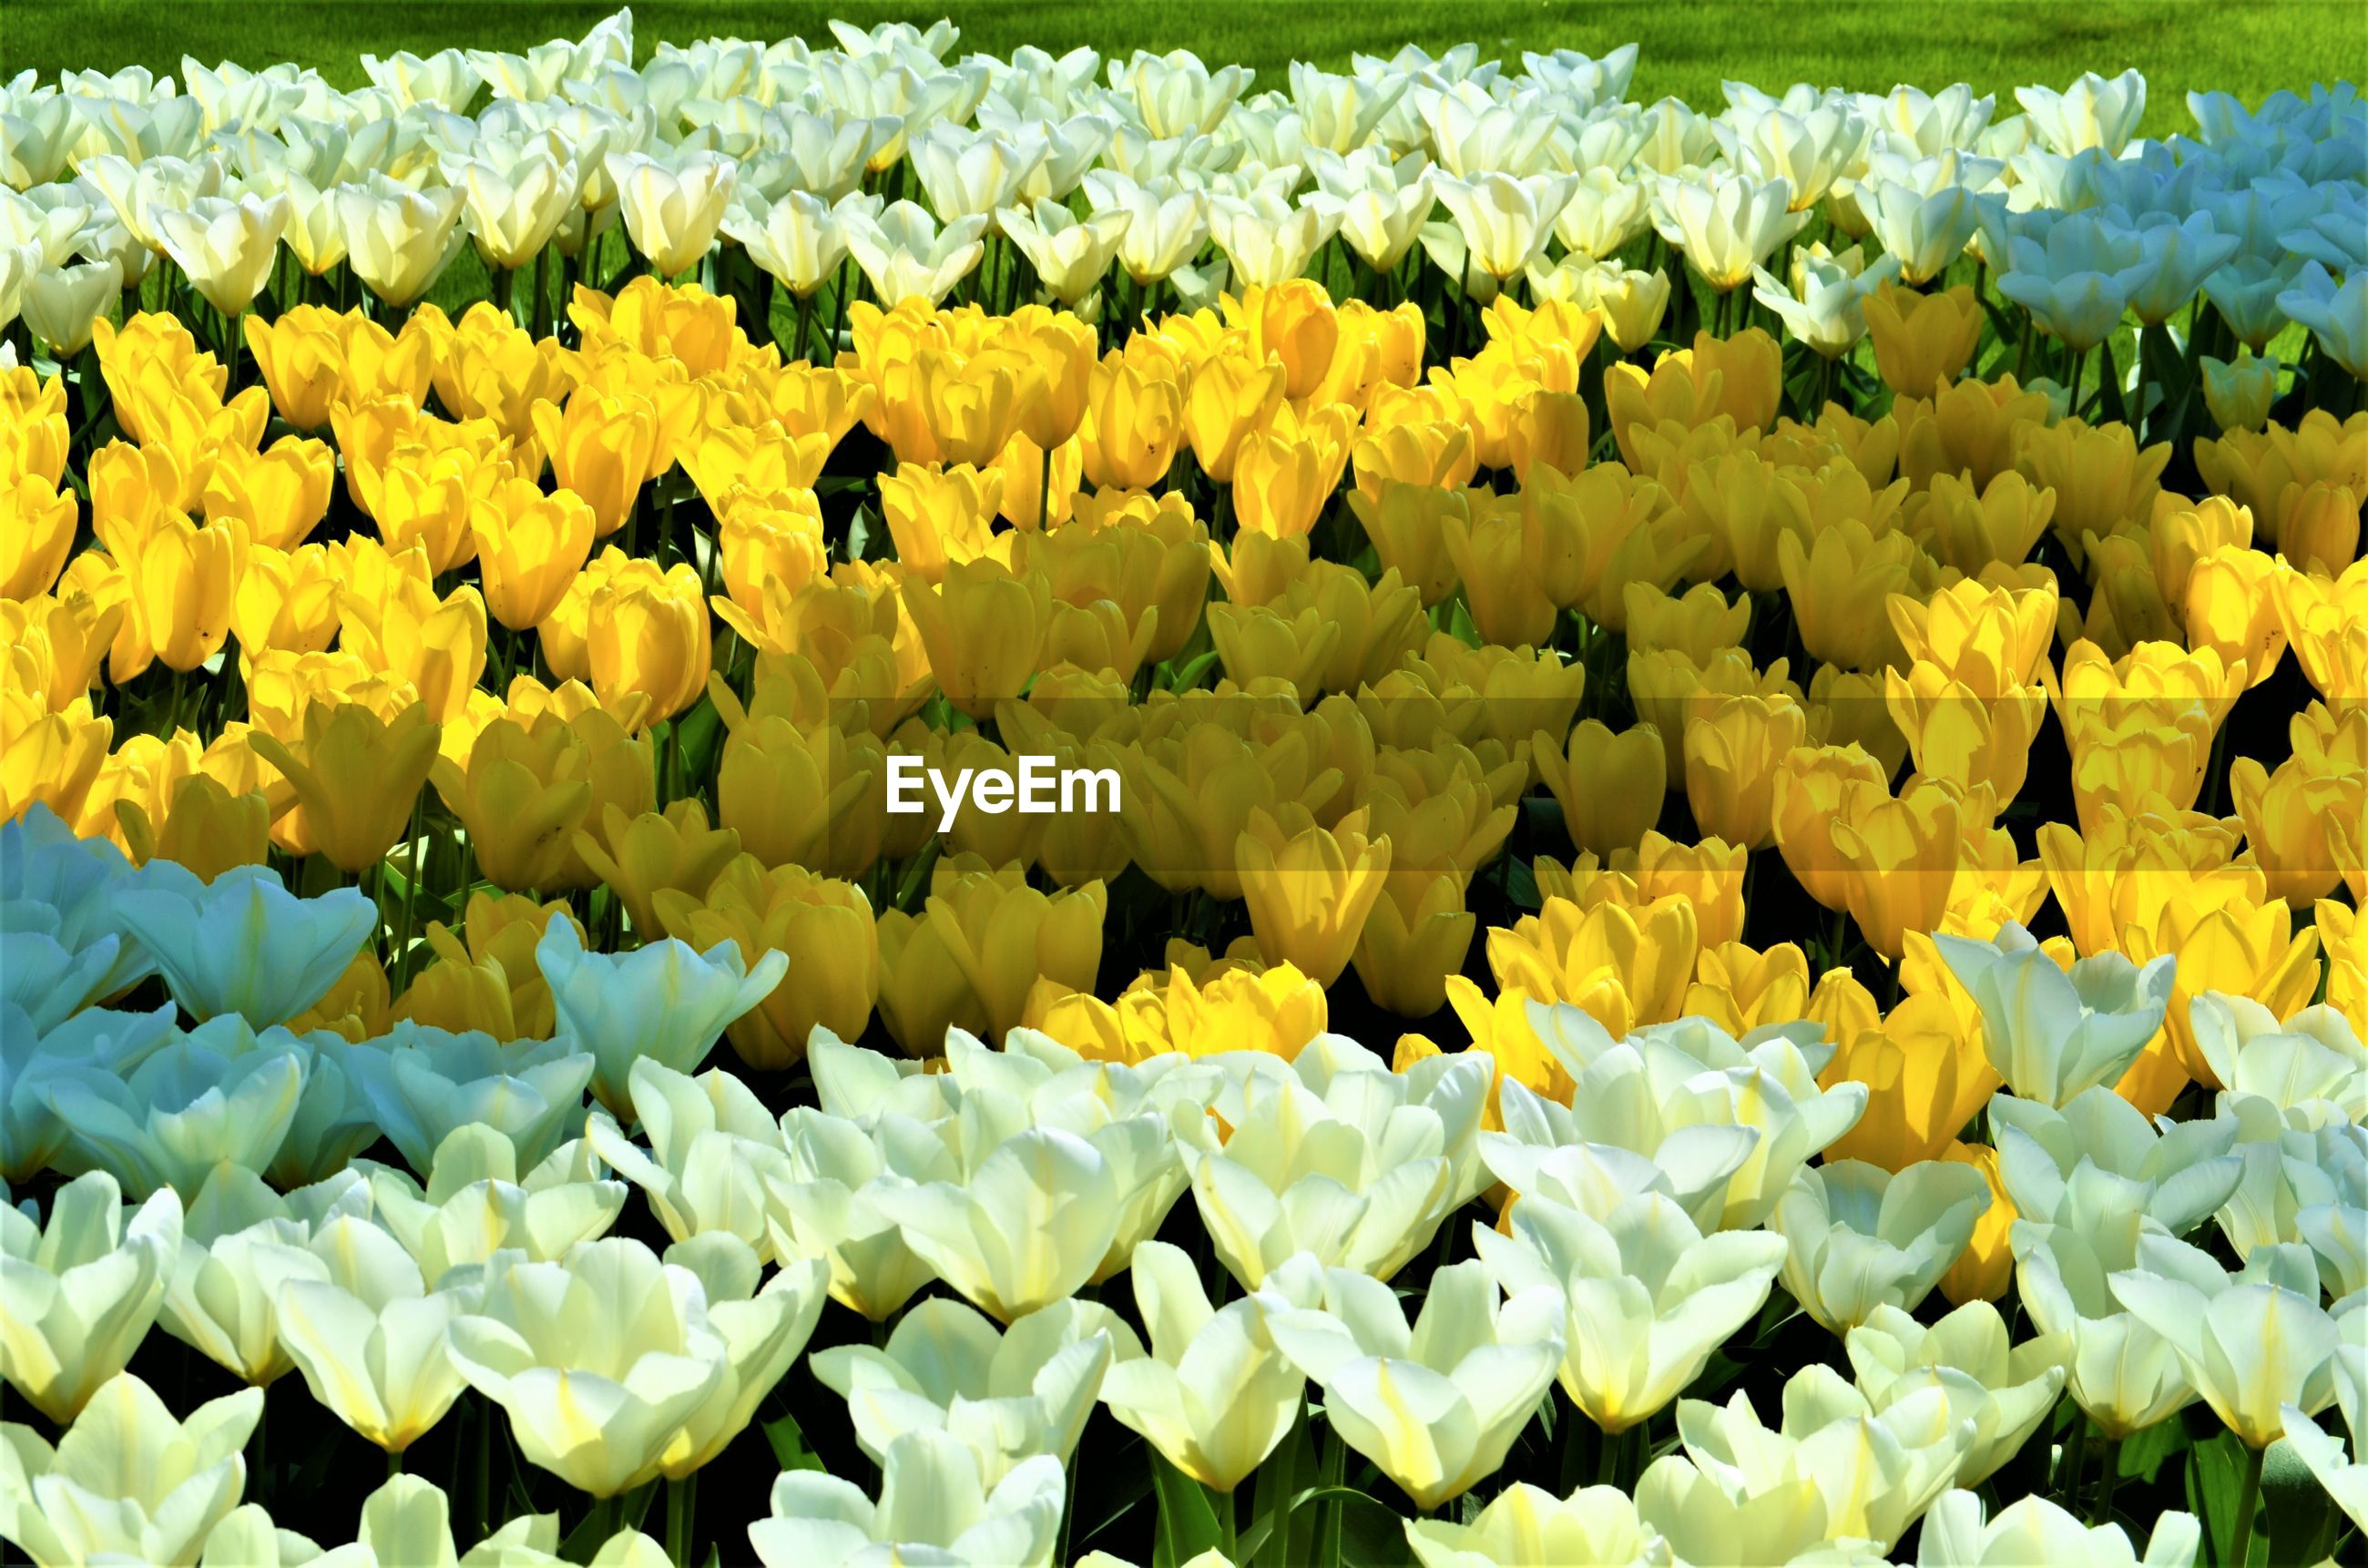 CLOSE-UP OF YELLOW FLOWERING PLANTS IN BLOOM